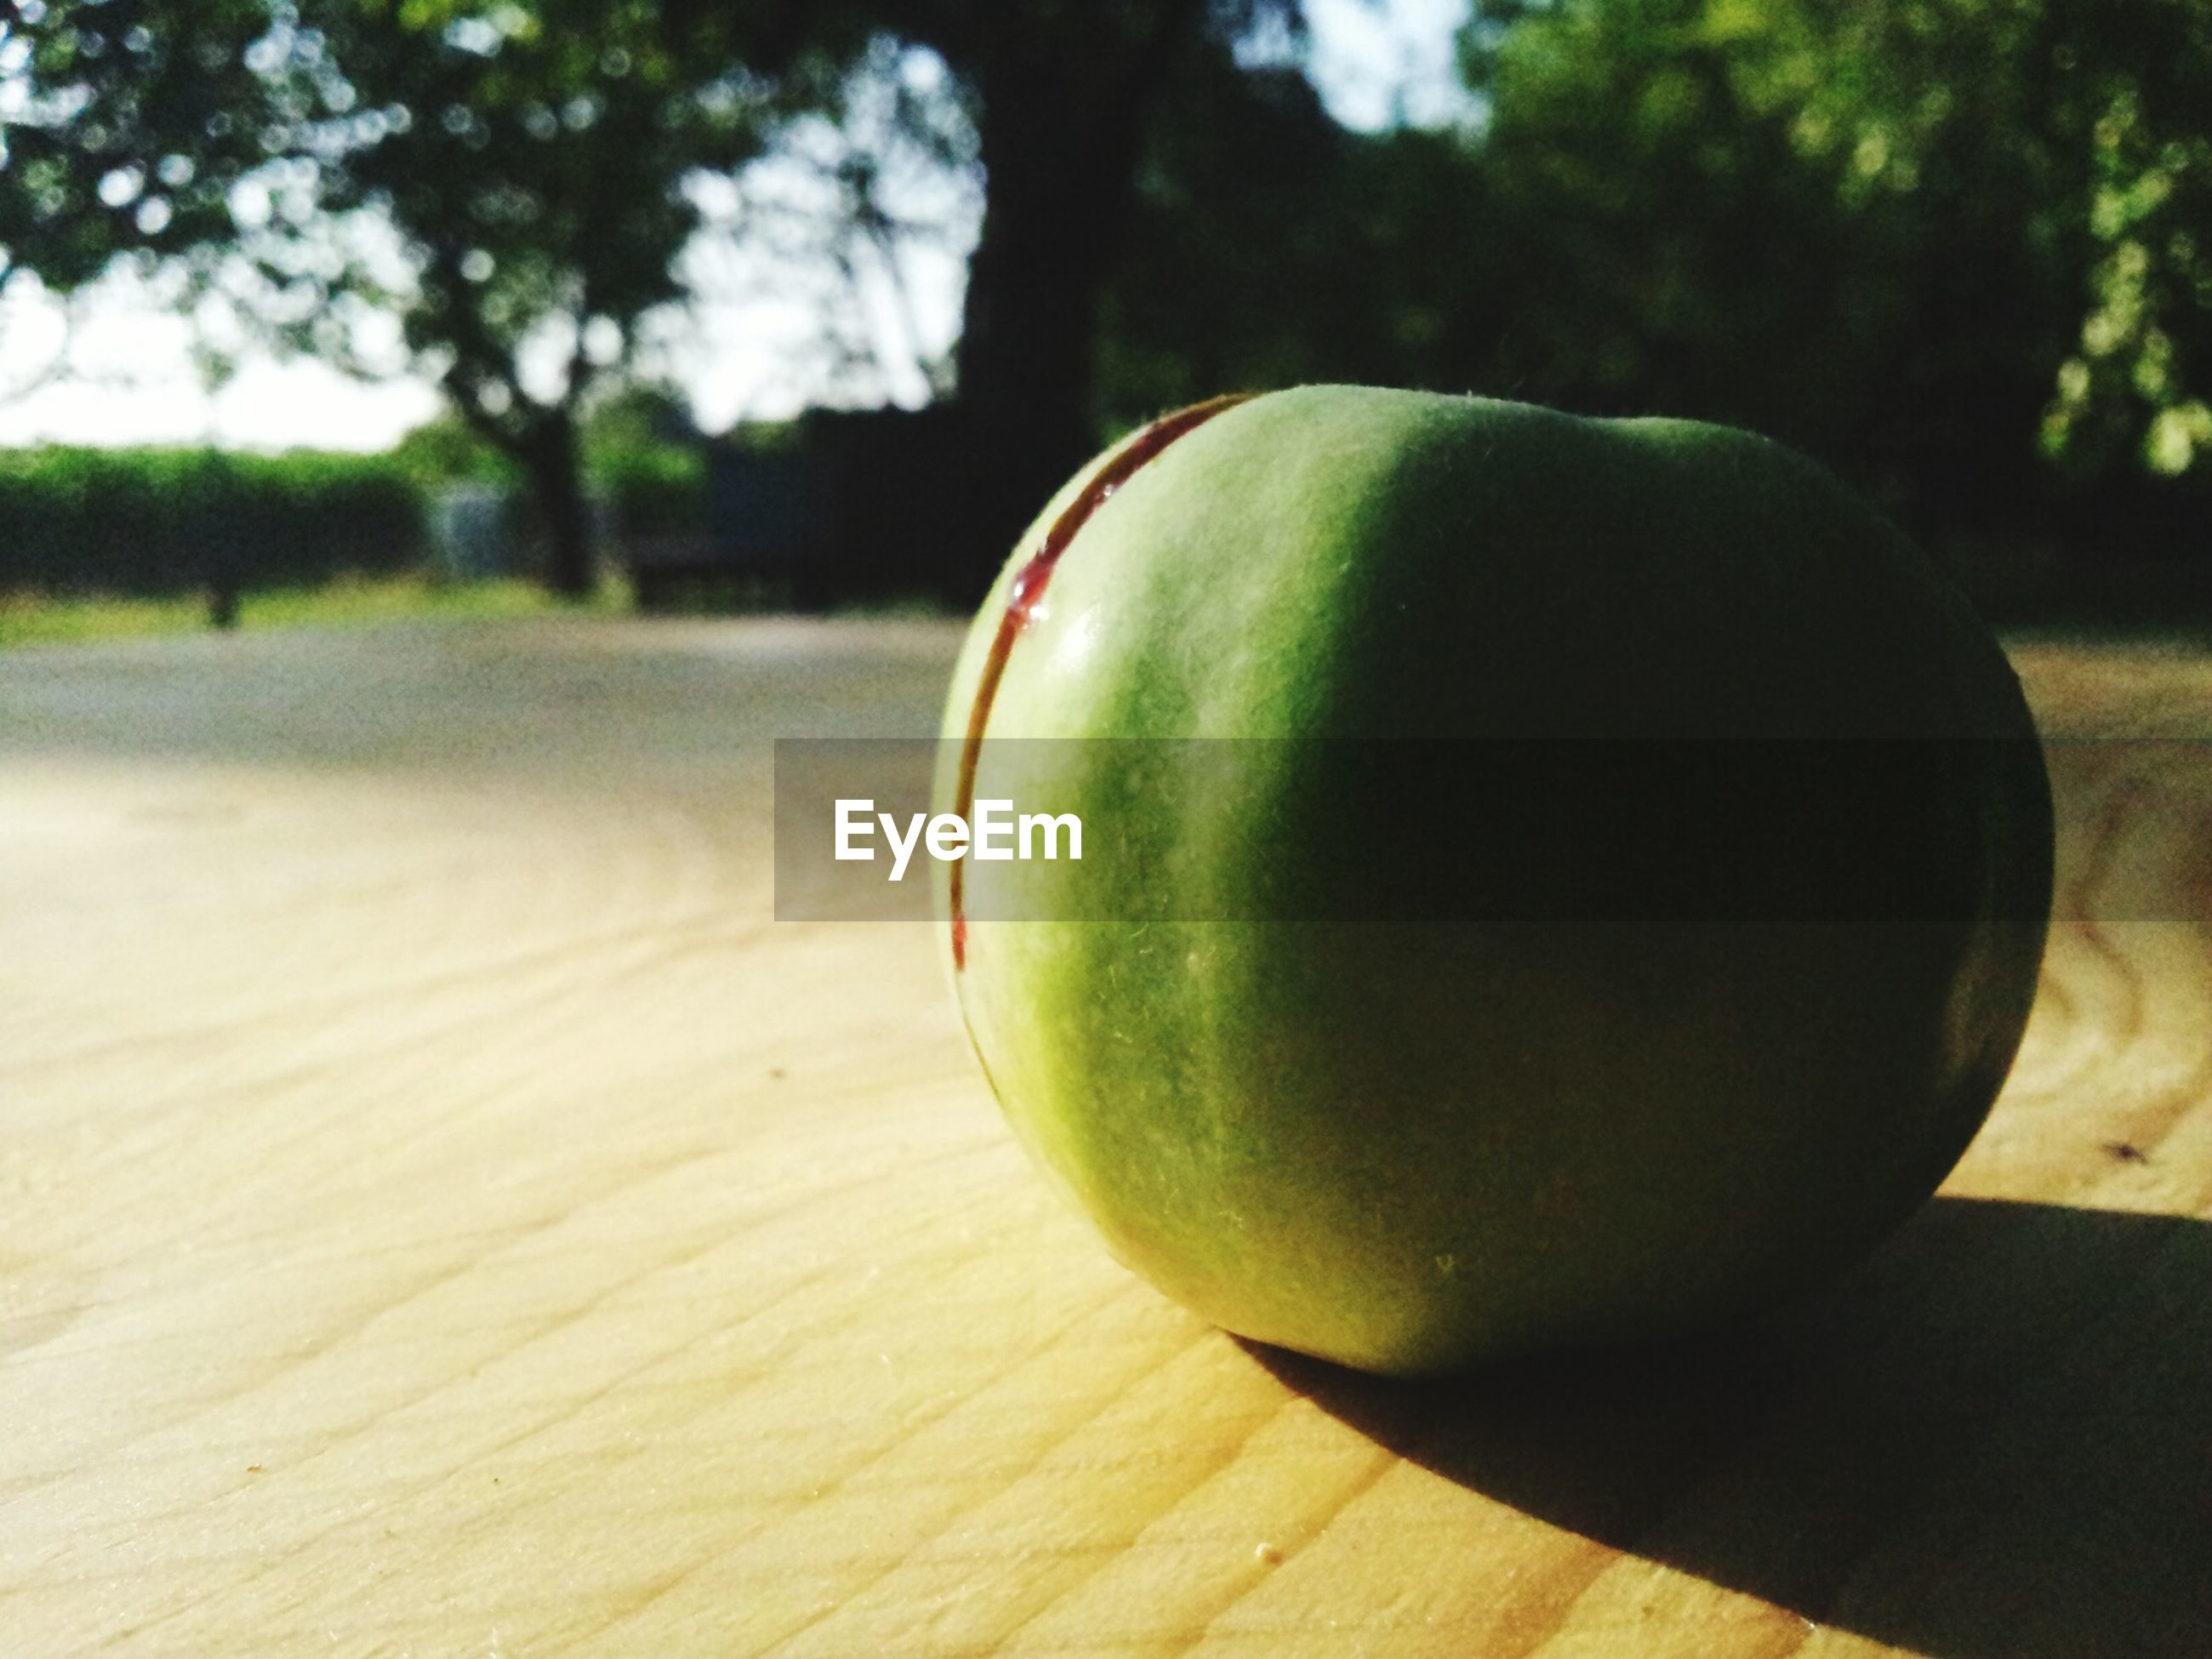 green color, close-up, food and drink, fruit, healthy eating, still life, focus on foreground, ball, grass, tree, green, field, freshness, table, apple - fruit, food, growth, wood - material, day, no people